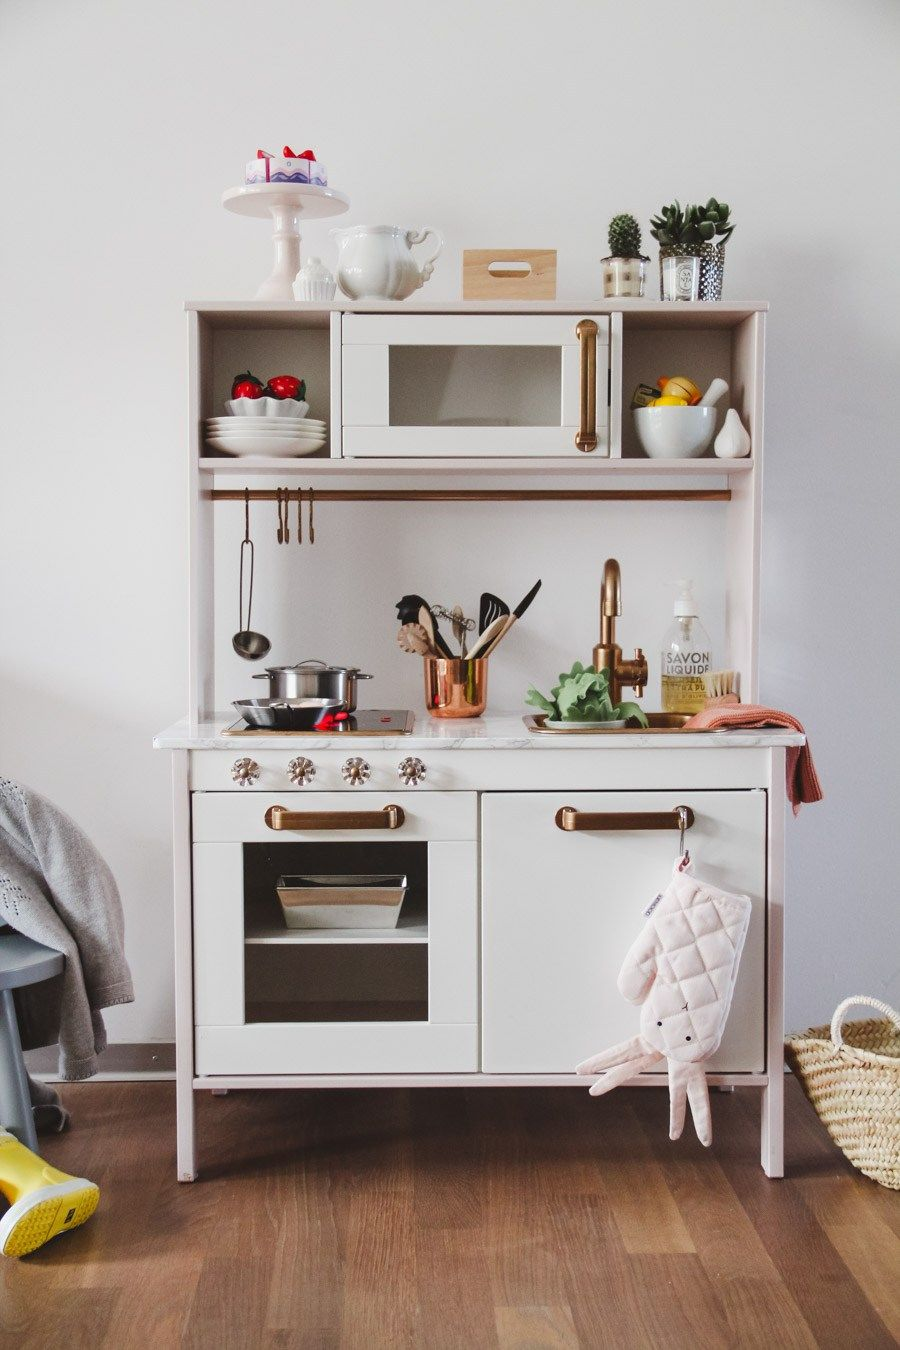 ikea kinderk che pimpen eine kleine anleitung tiny fun. Black Bedroom Furniture Sets. Home Design Ideas